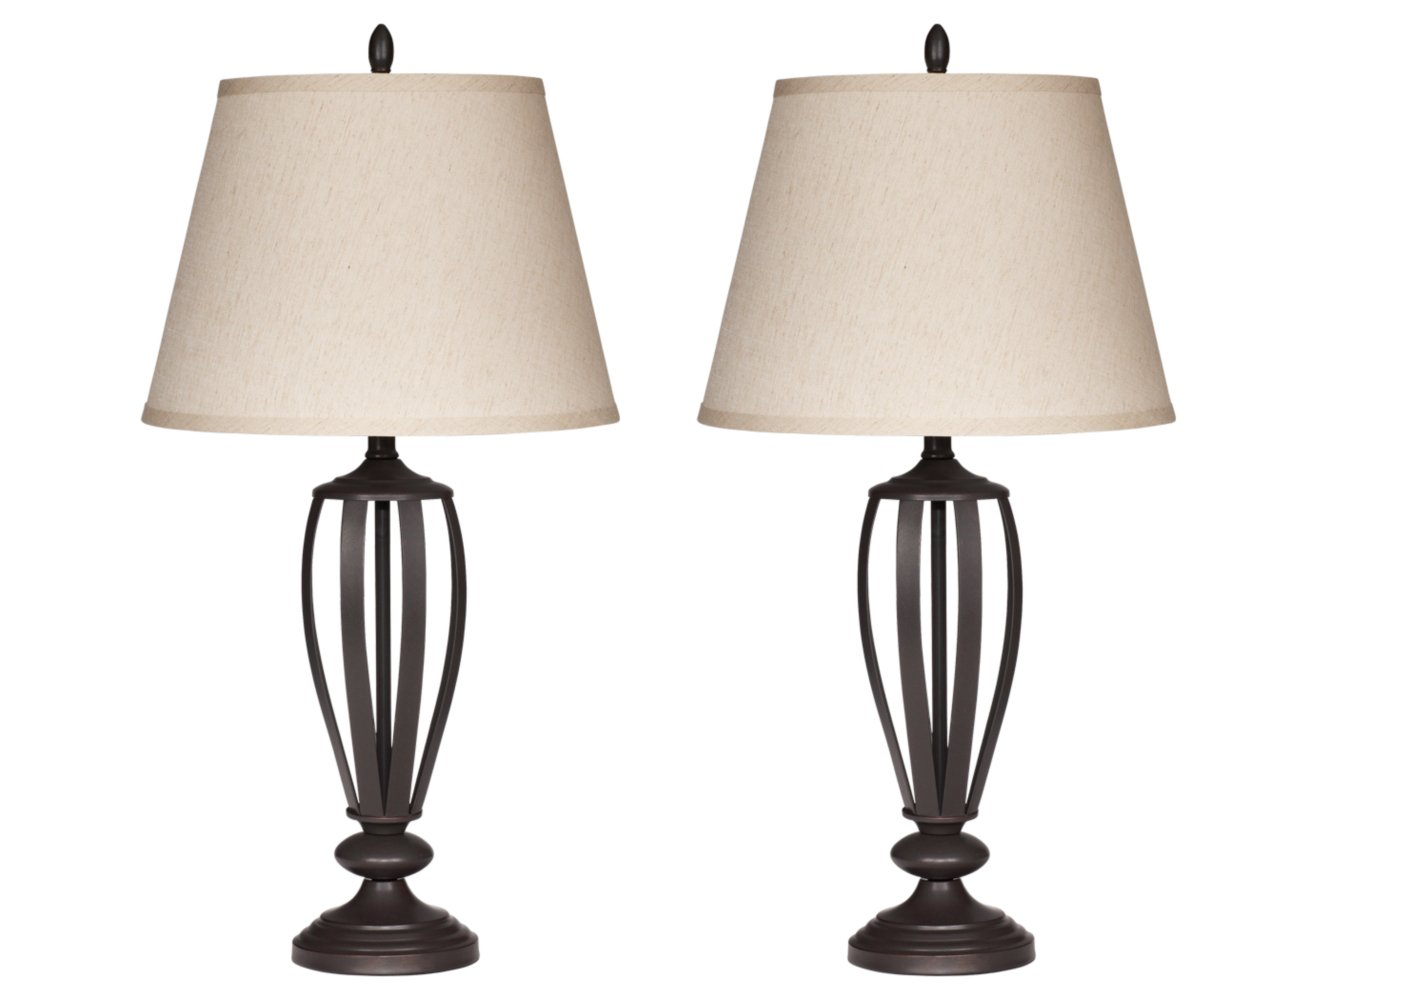 Ashley Furniture Signature Design - Mildred Metal Table Lamp - Vintage Casual Shades - Set of 2 - Bronze